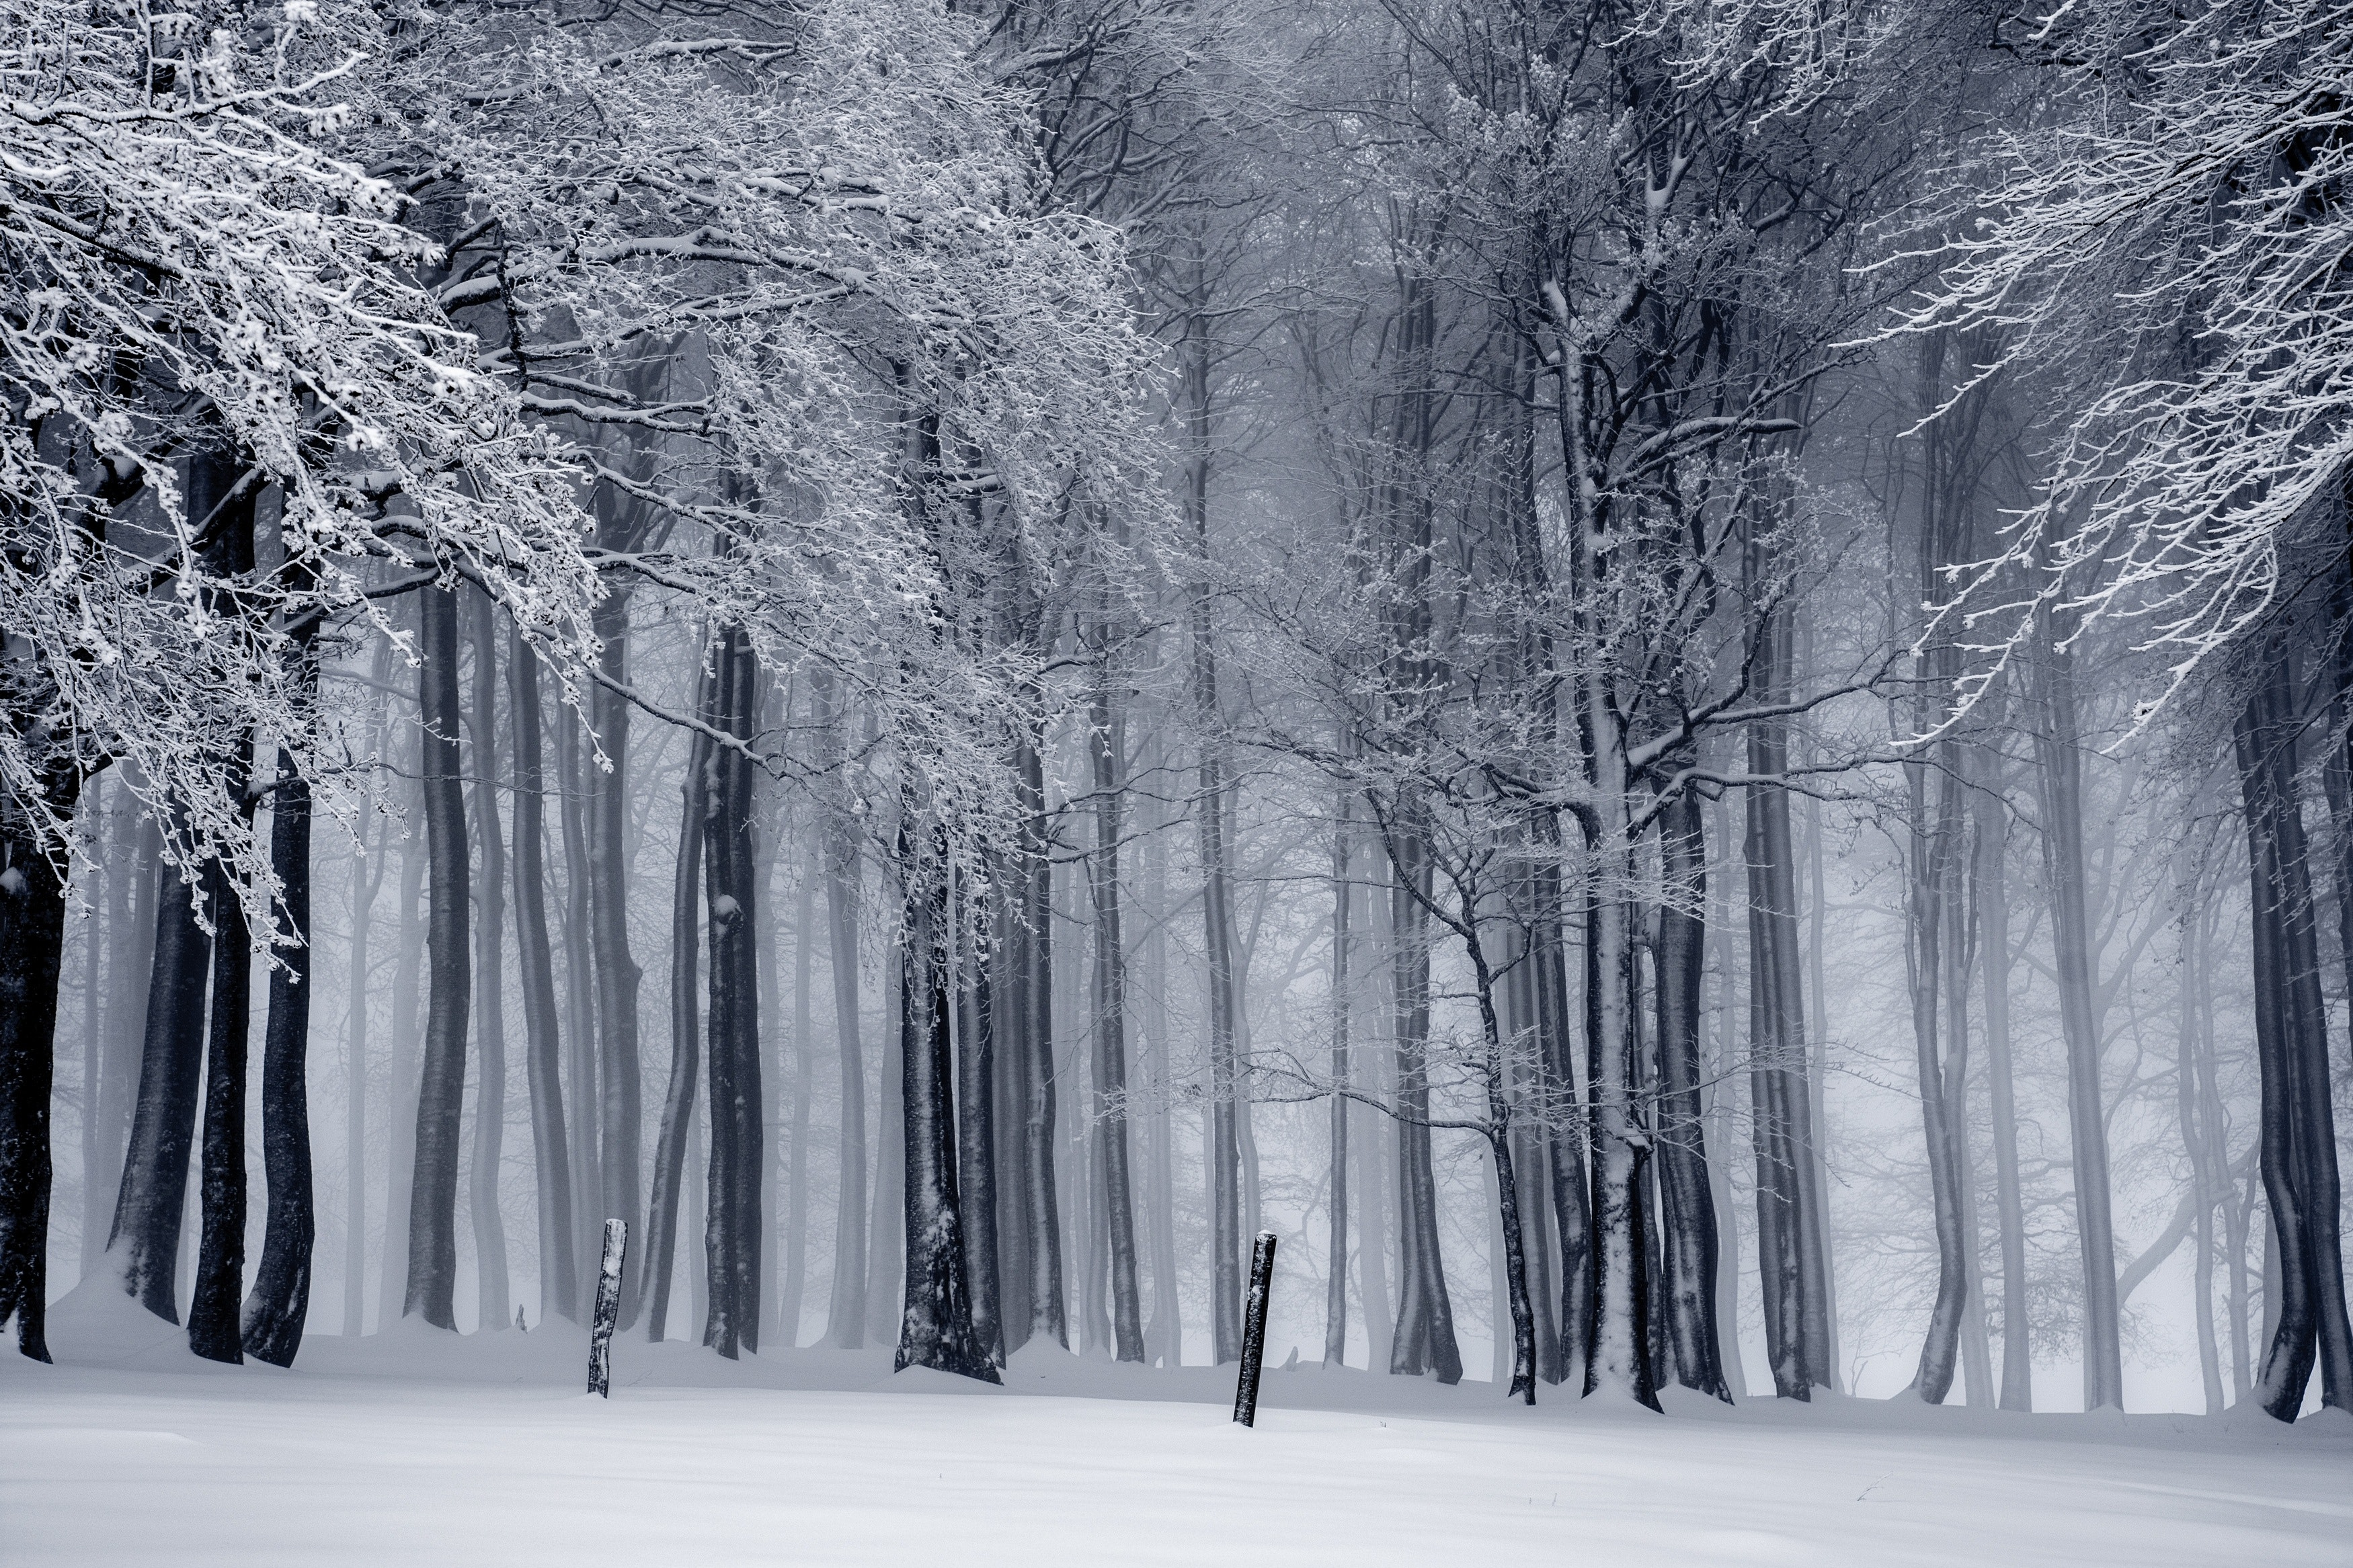 Snowy Forest Free Stock Photo